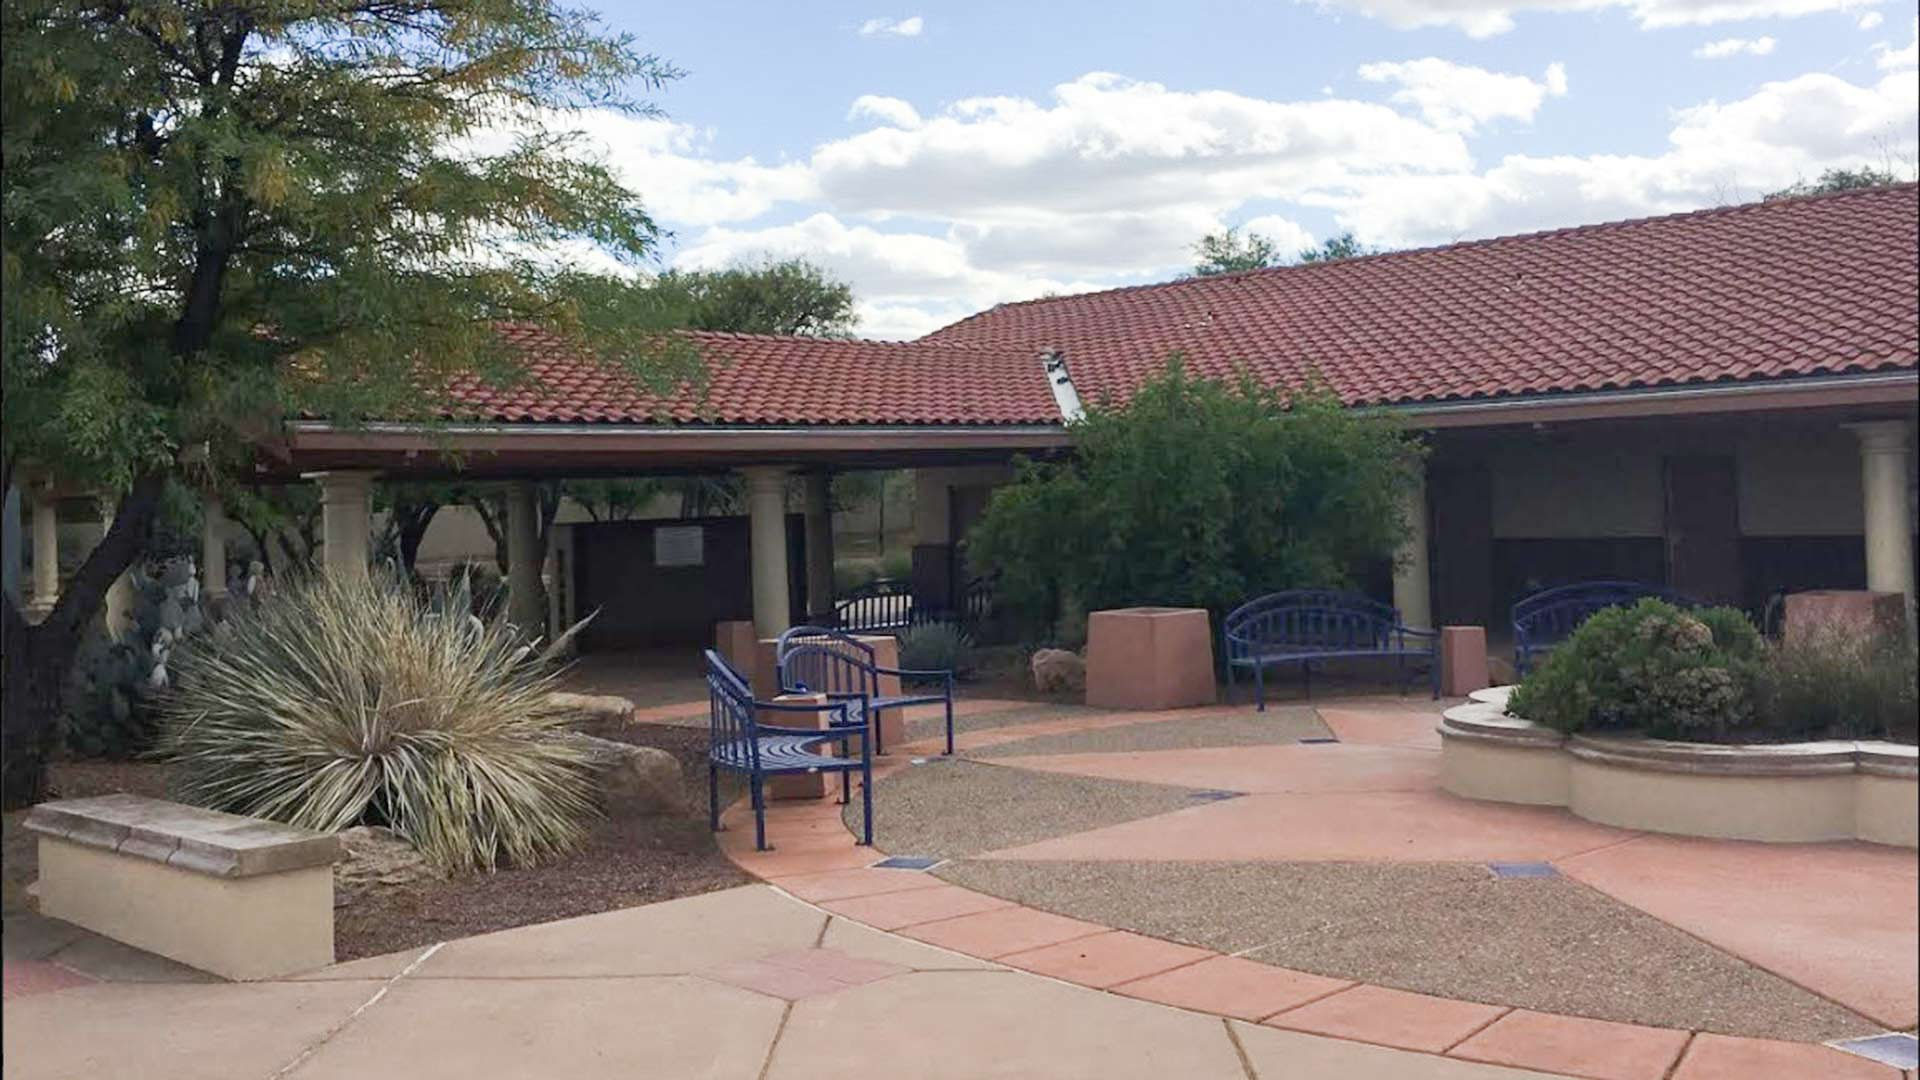 The Canoa Ranch Rest Area on Interstate 19 seen in a photo posted on the Arizona Department of Transportation Facebook page, May 24, 2019.